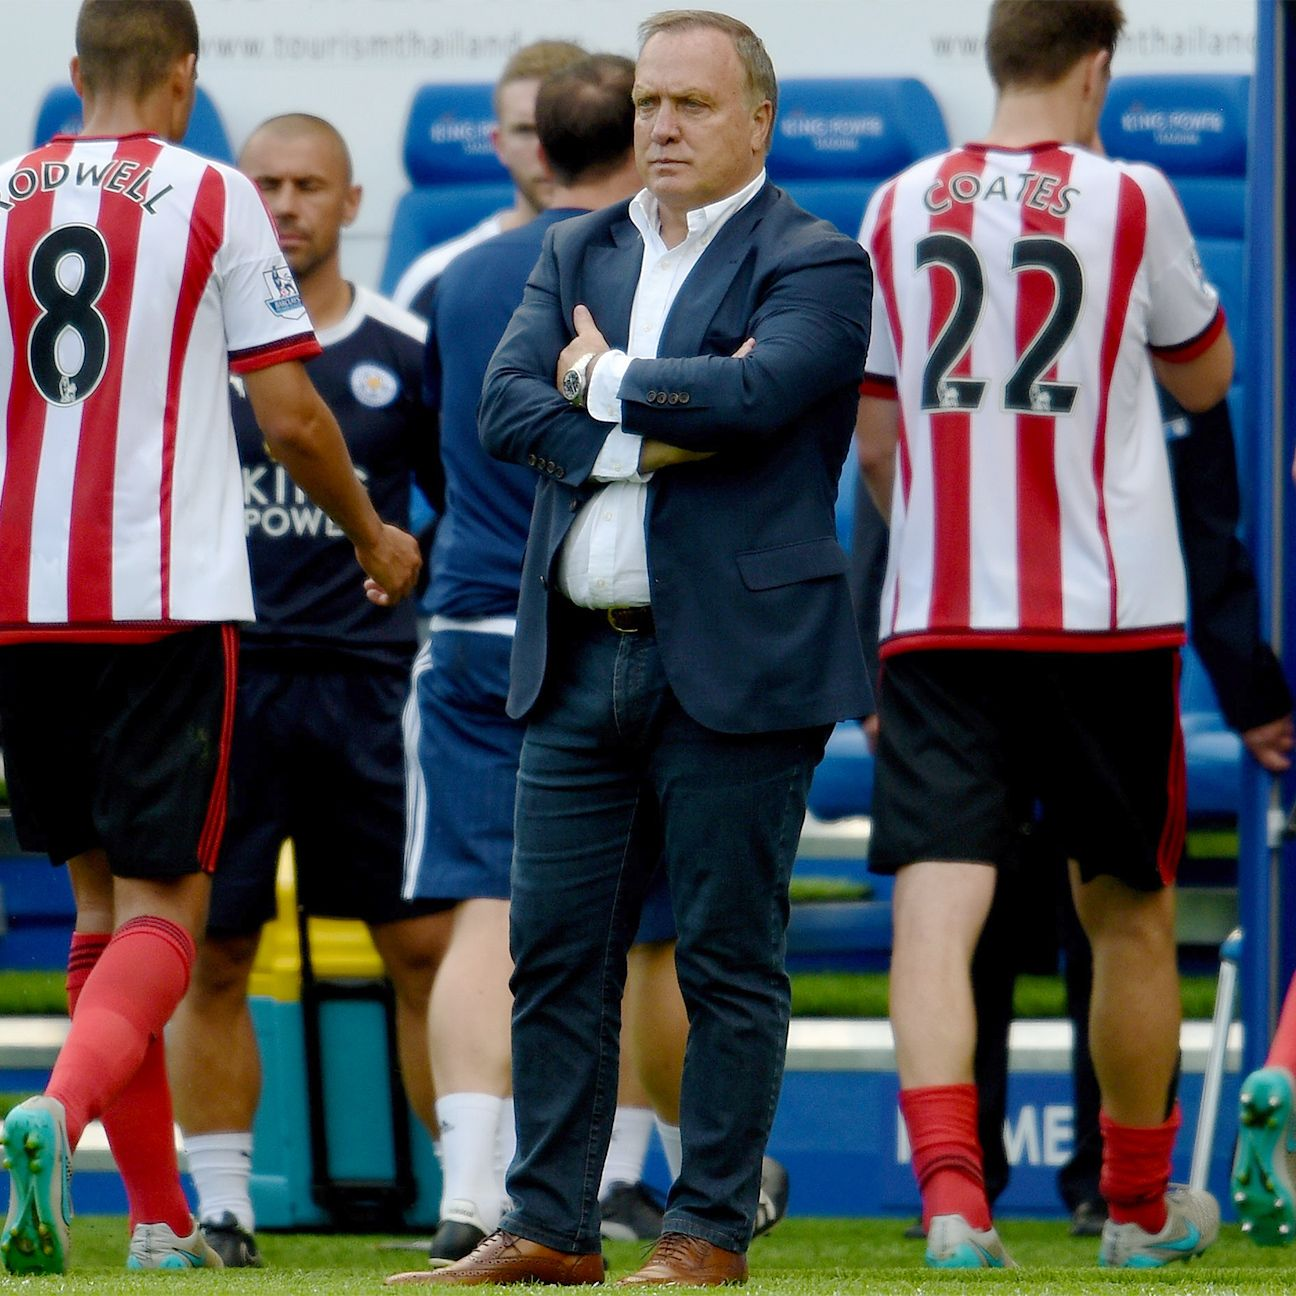 After allowing four goals on opening day, Sunderland boss Dick Advocaat will be looking for a better performance from his defence against Norwich.